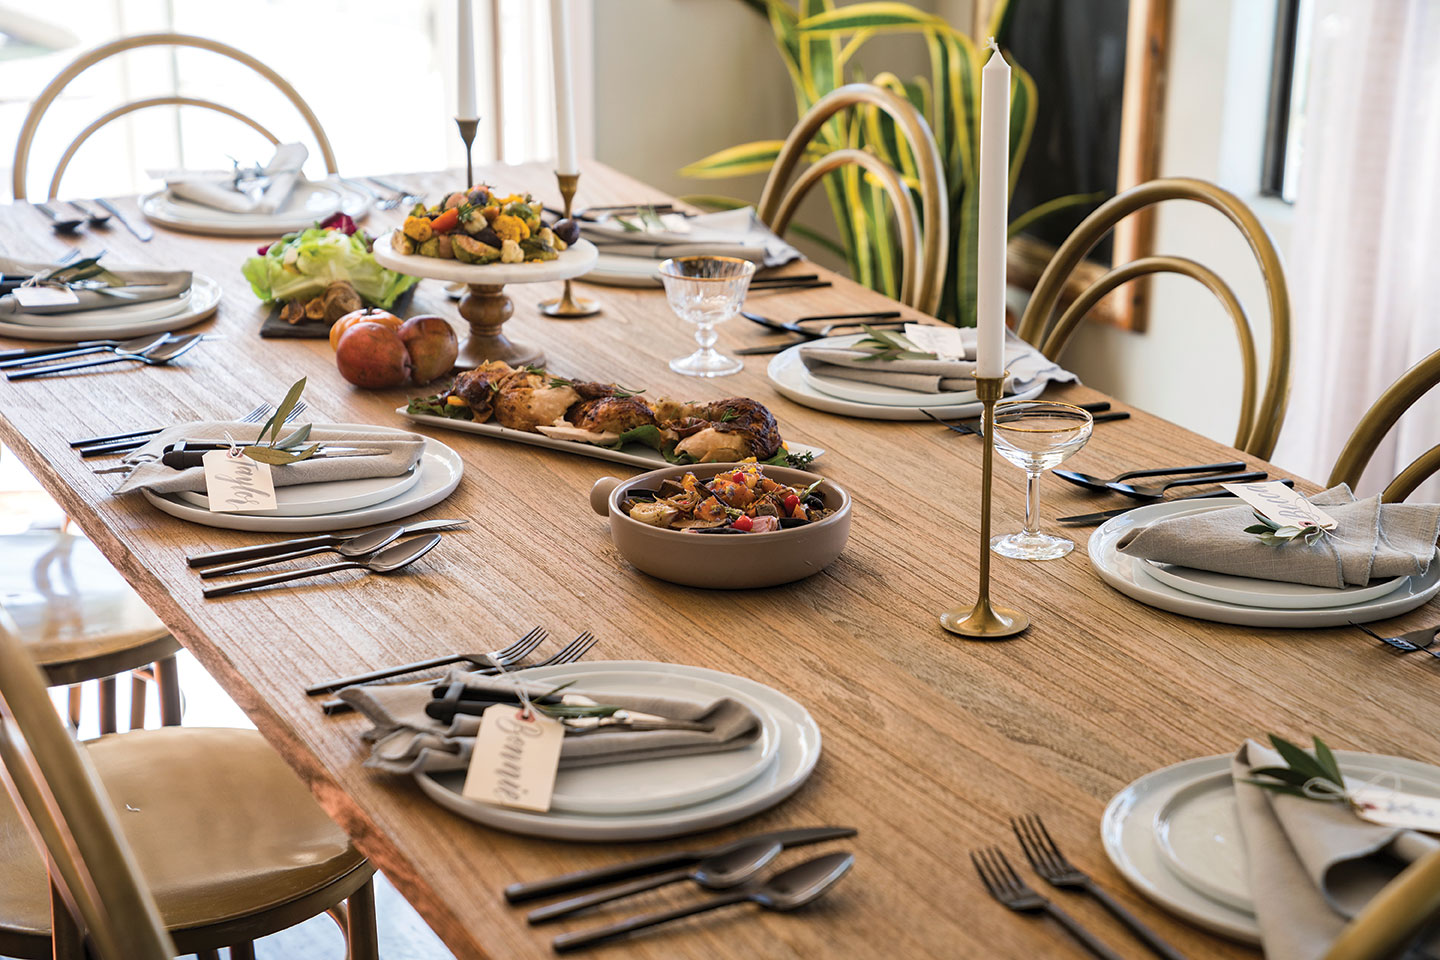 DIY wreath making party Root Cellar Catering